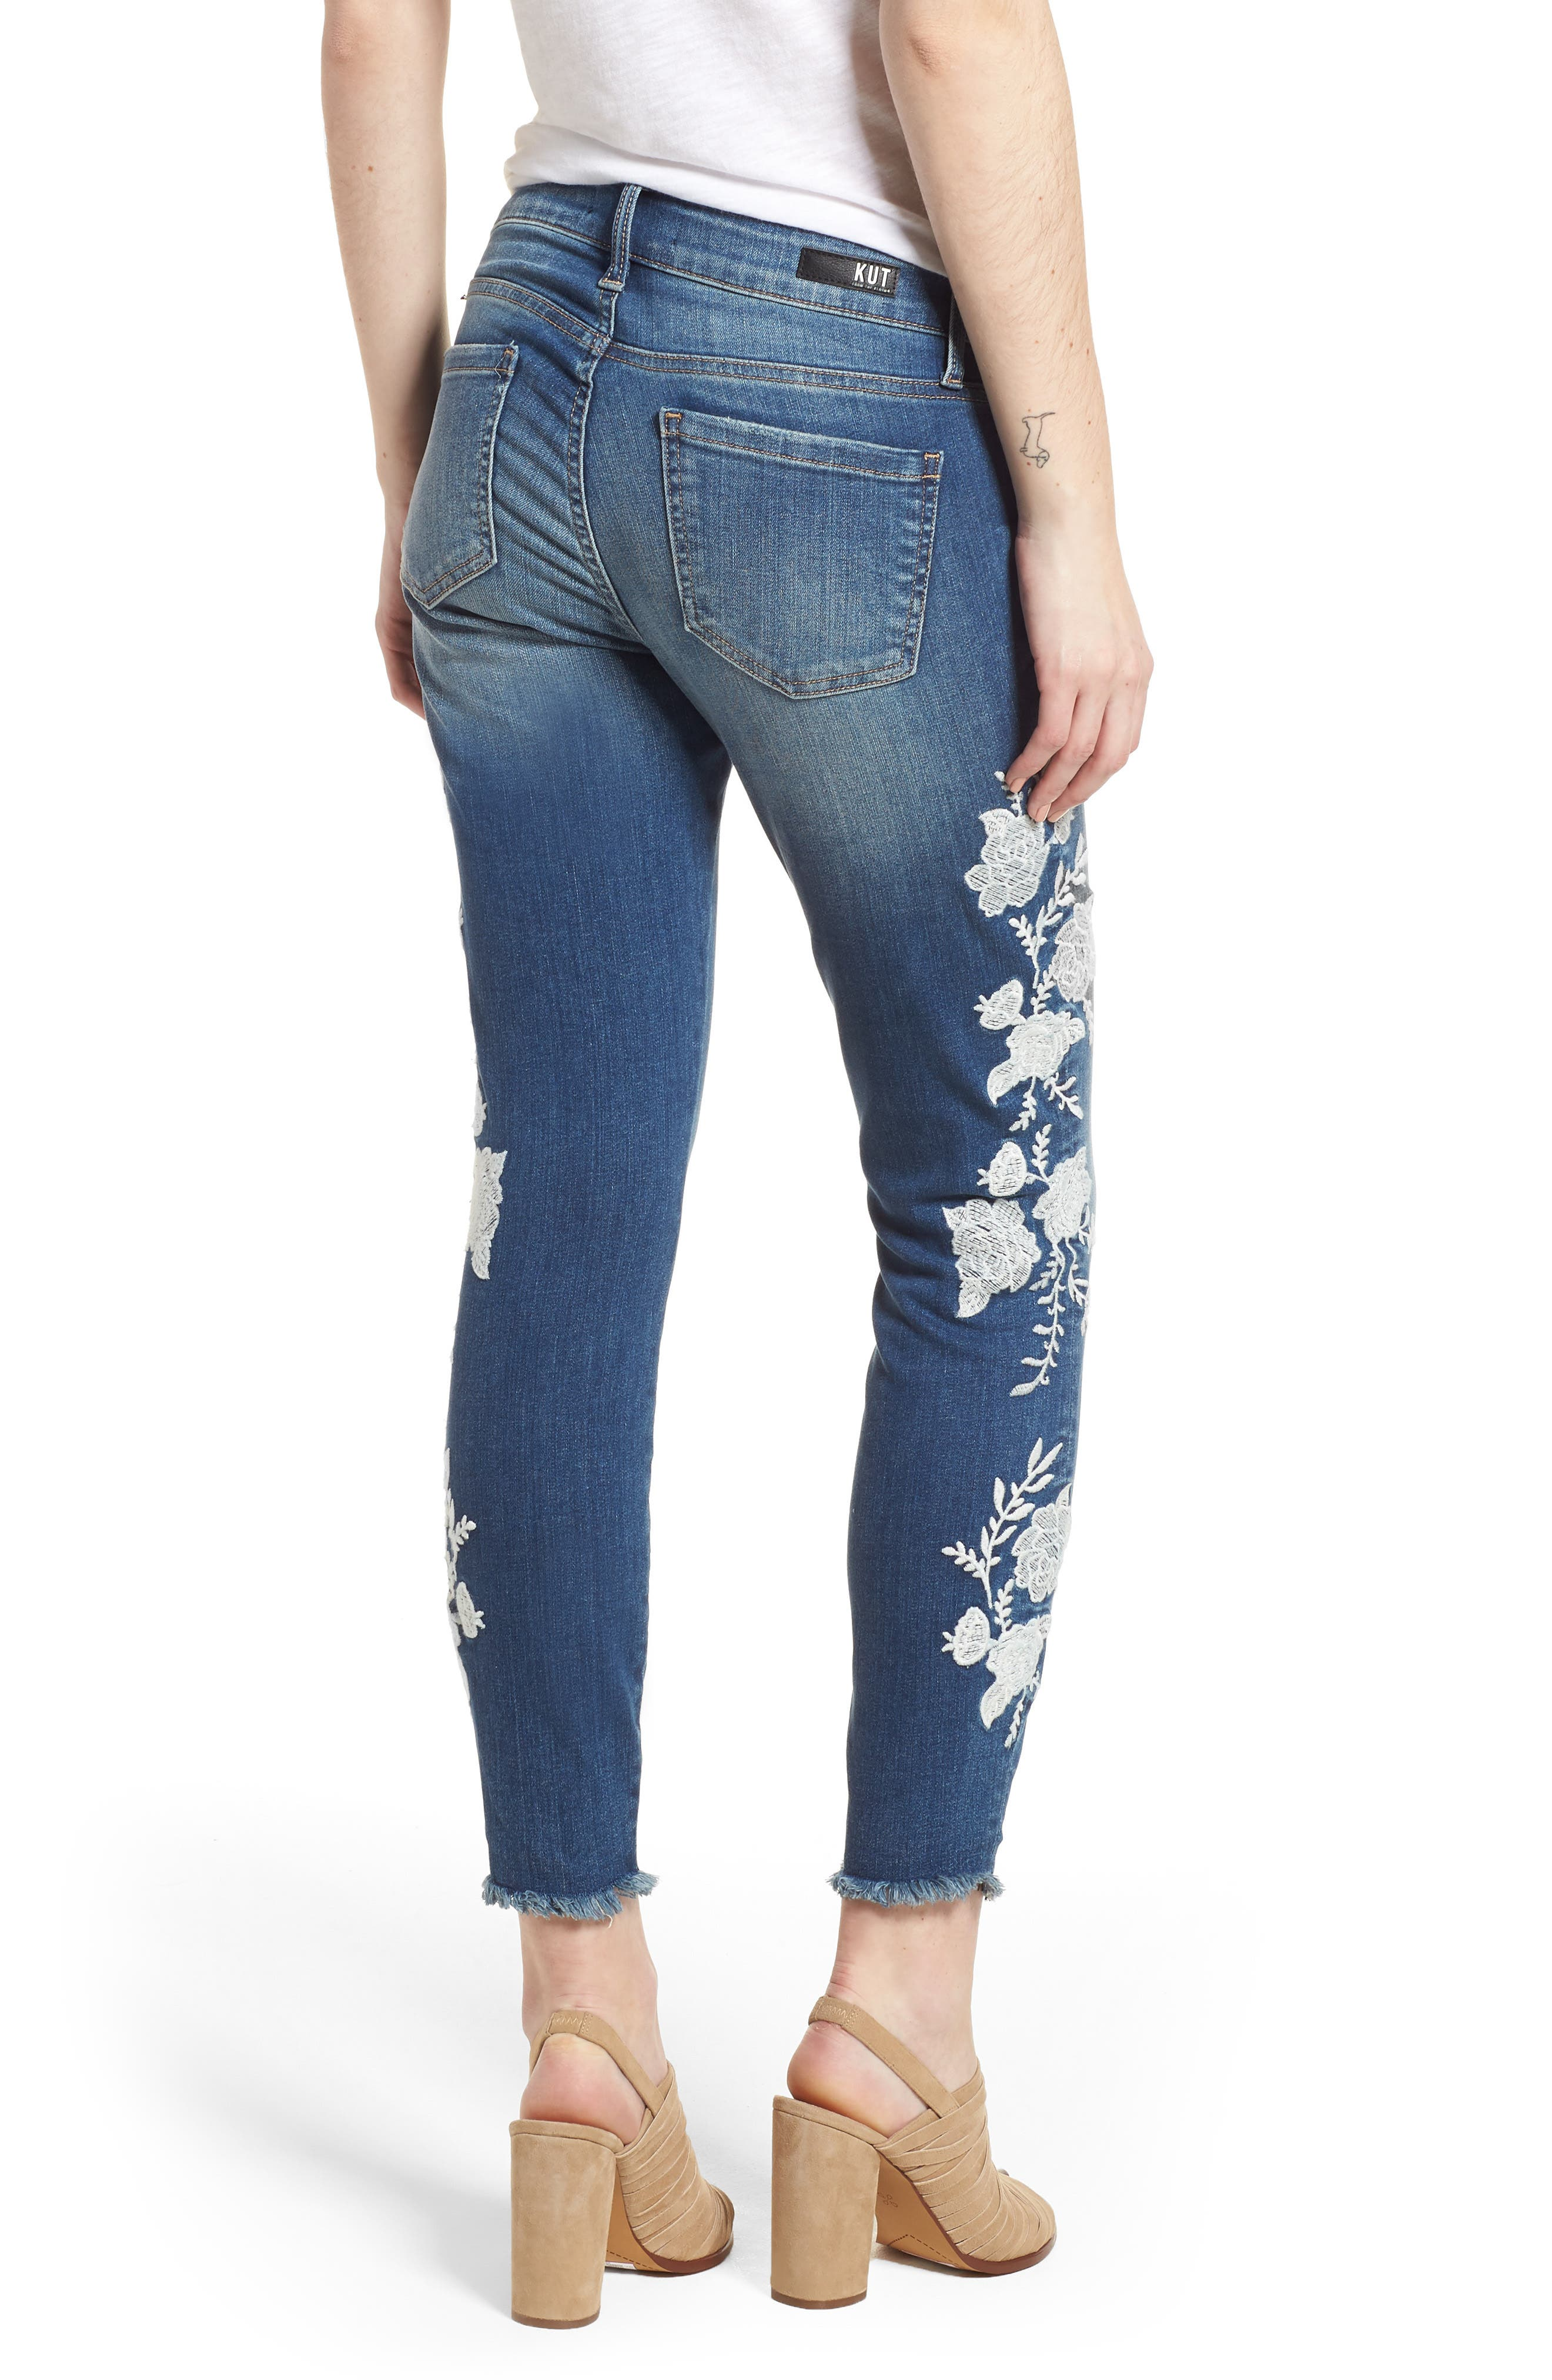 KUT KOLLECTION,                             KUT from the Kloth Connie Embroidered Skinny Jeans,                             Alternate thumbnail 2, color,                             400